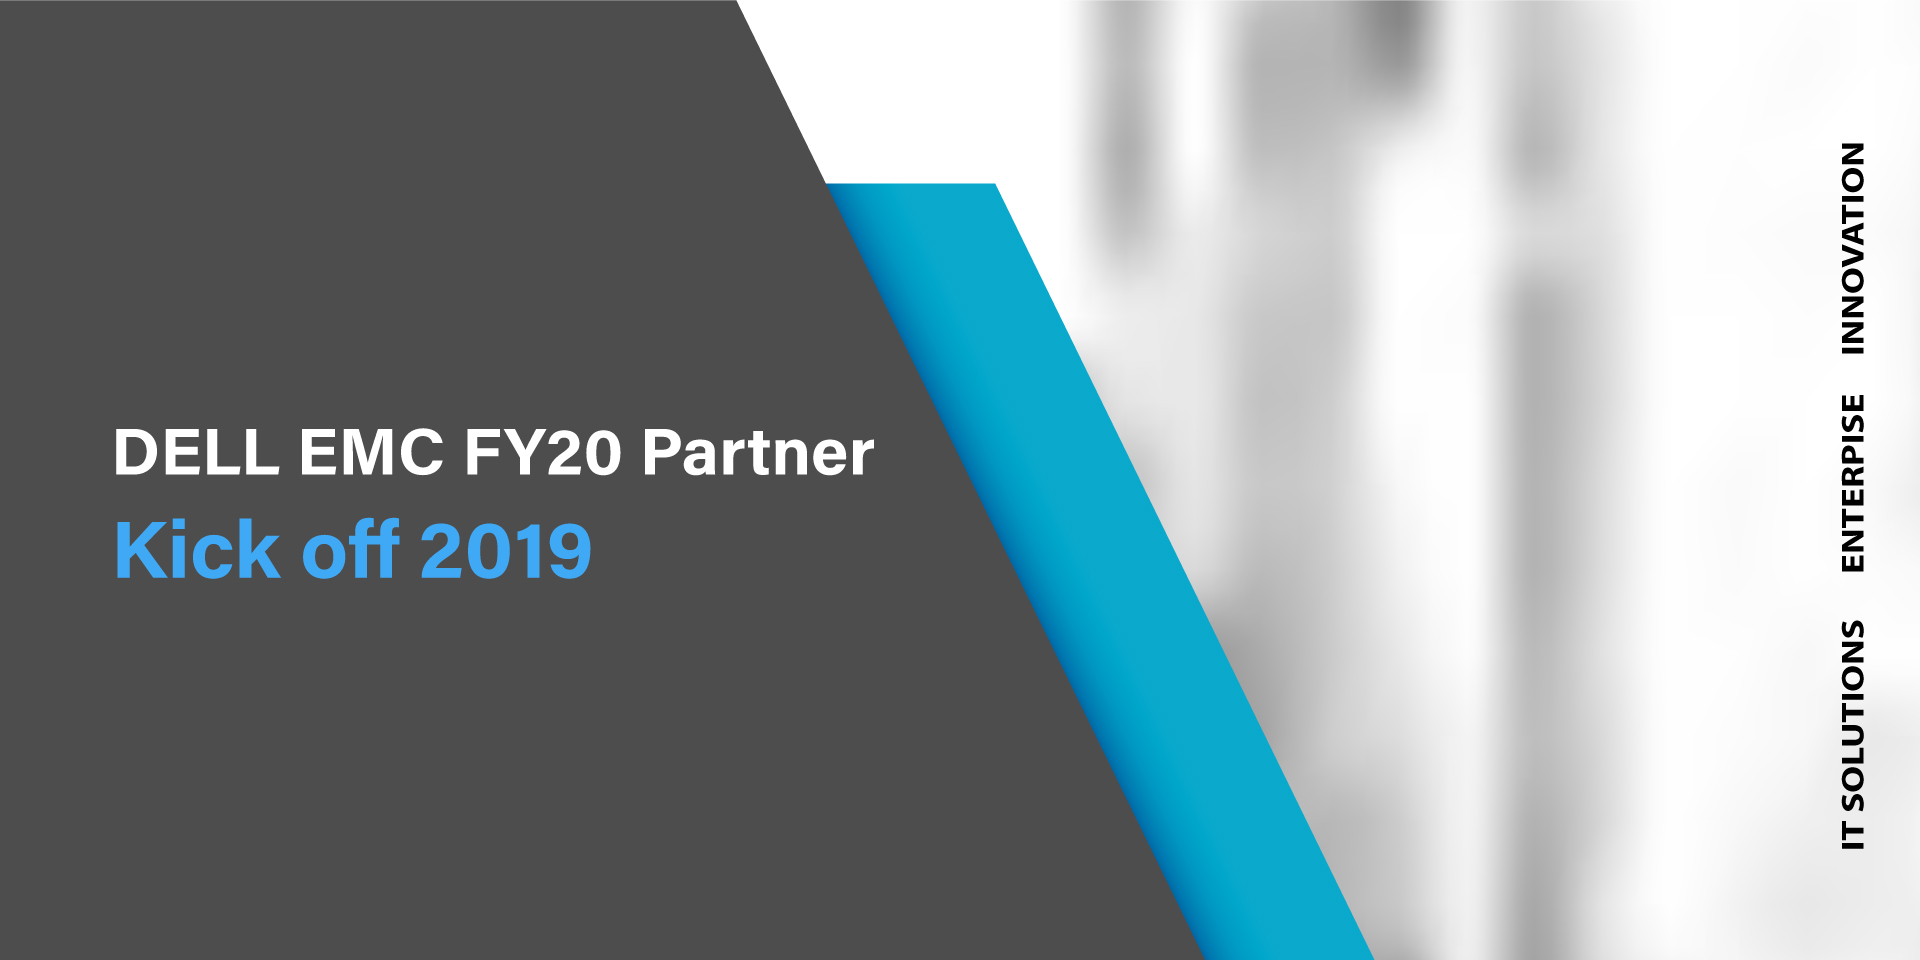 Kick-off-2019DELL-EMC-FY20-Partner.1